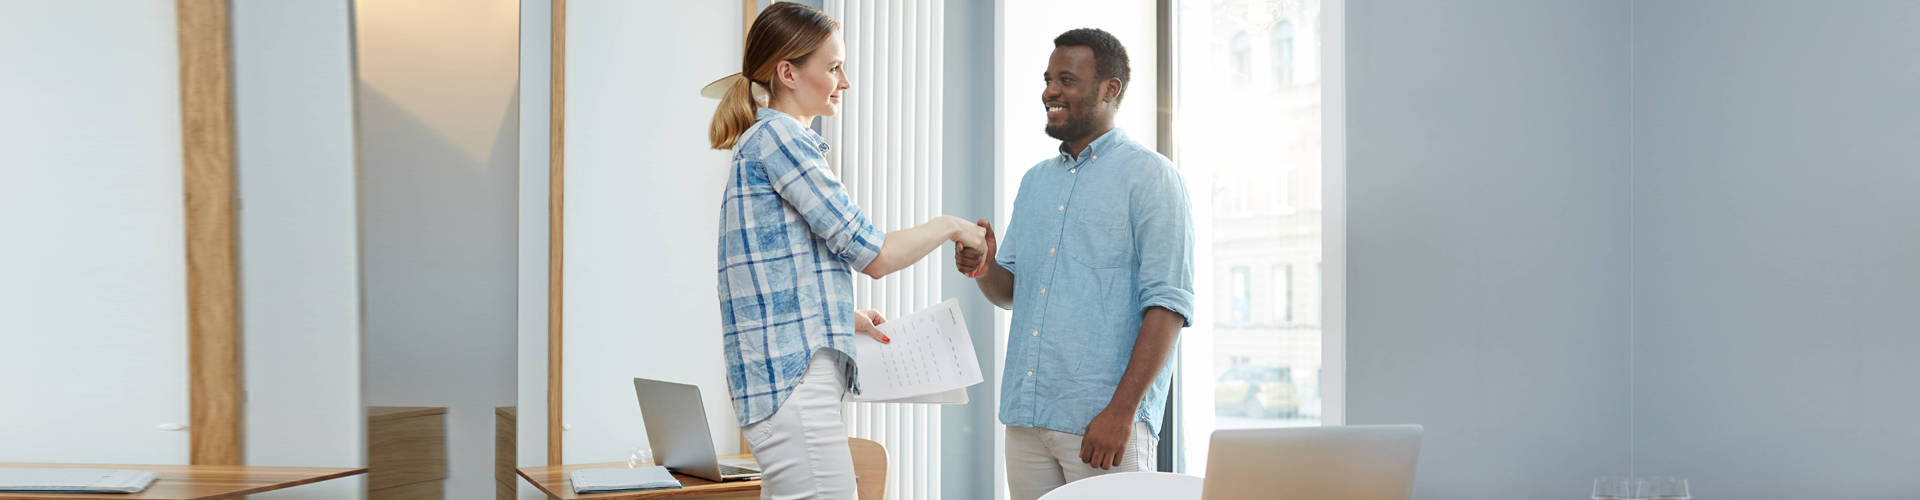 an applicant and an employer shaking hands